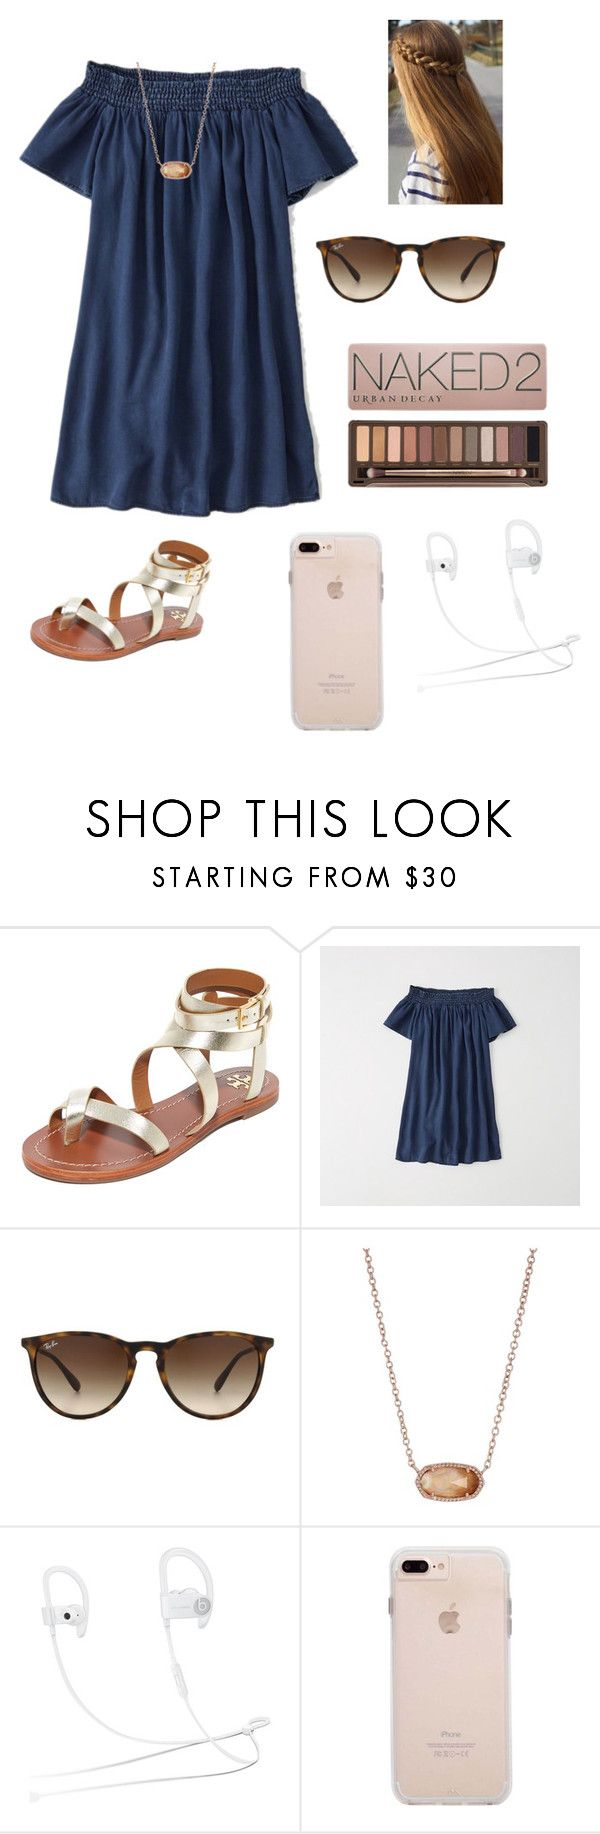 """wedding. hour away."" by mallory-d ❤ liked on Polyvore featuring Tory Burch, Abercrombie & Fitch, Ray-Ban, Kendra Scott, Beats by Dr. Dre and Case-Mate"